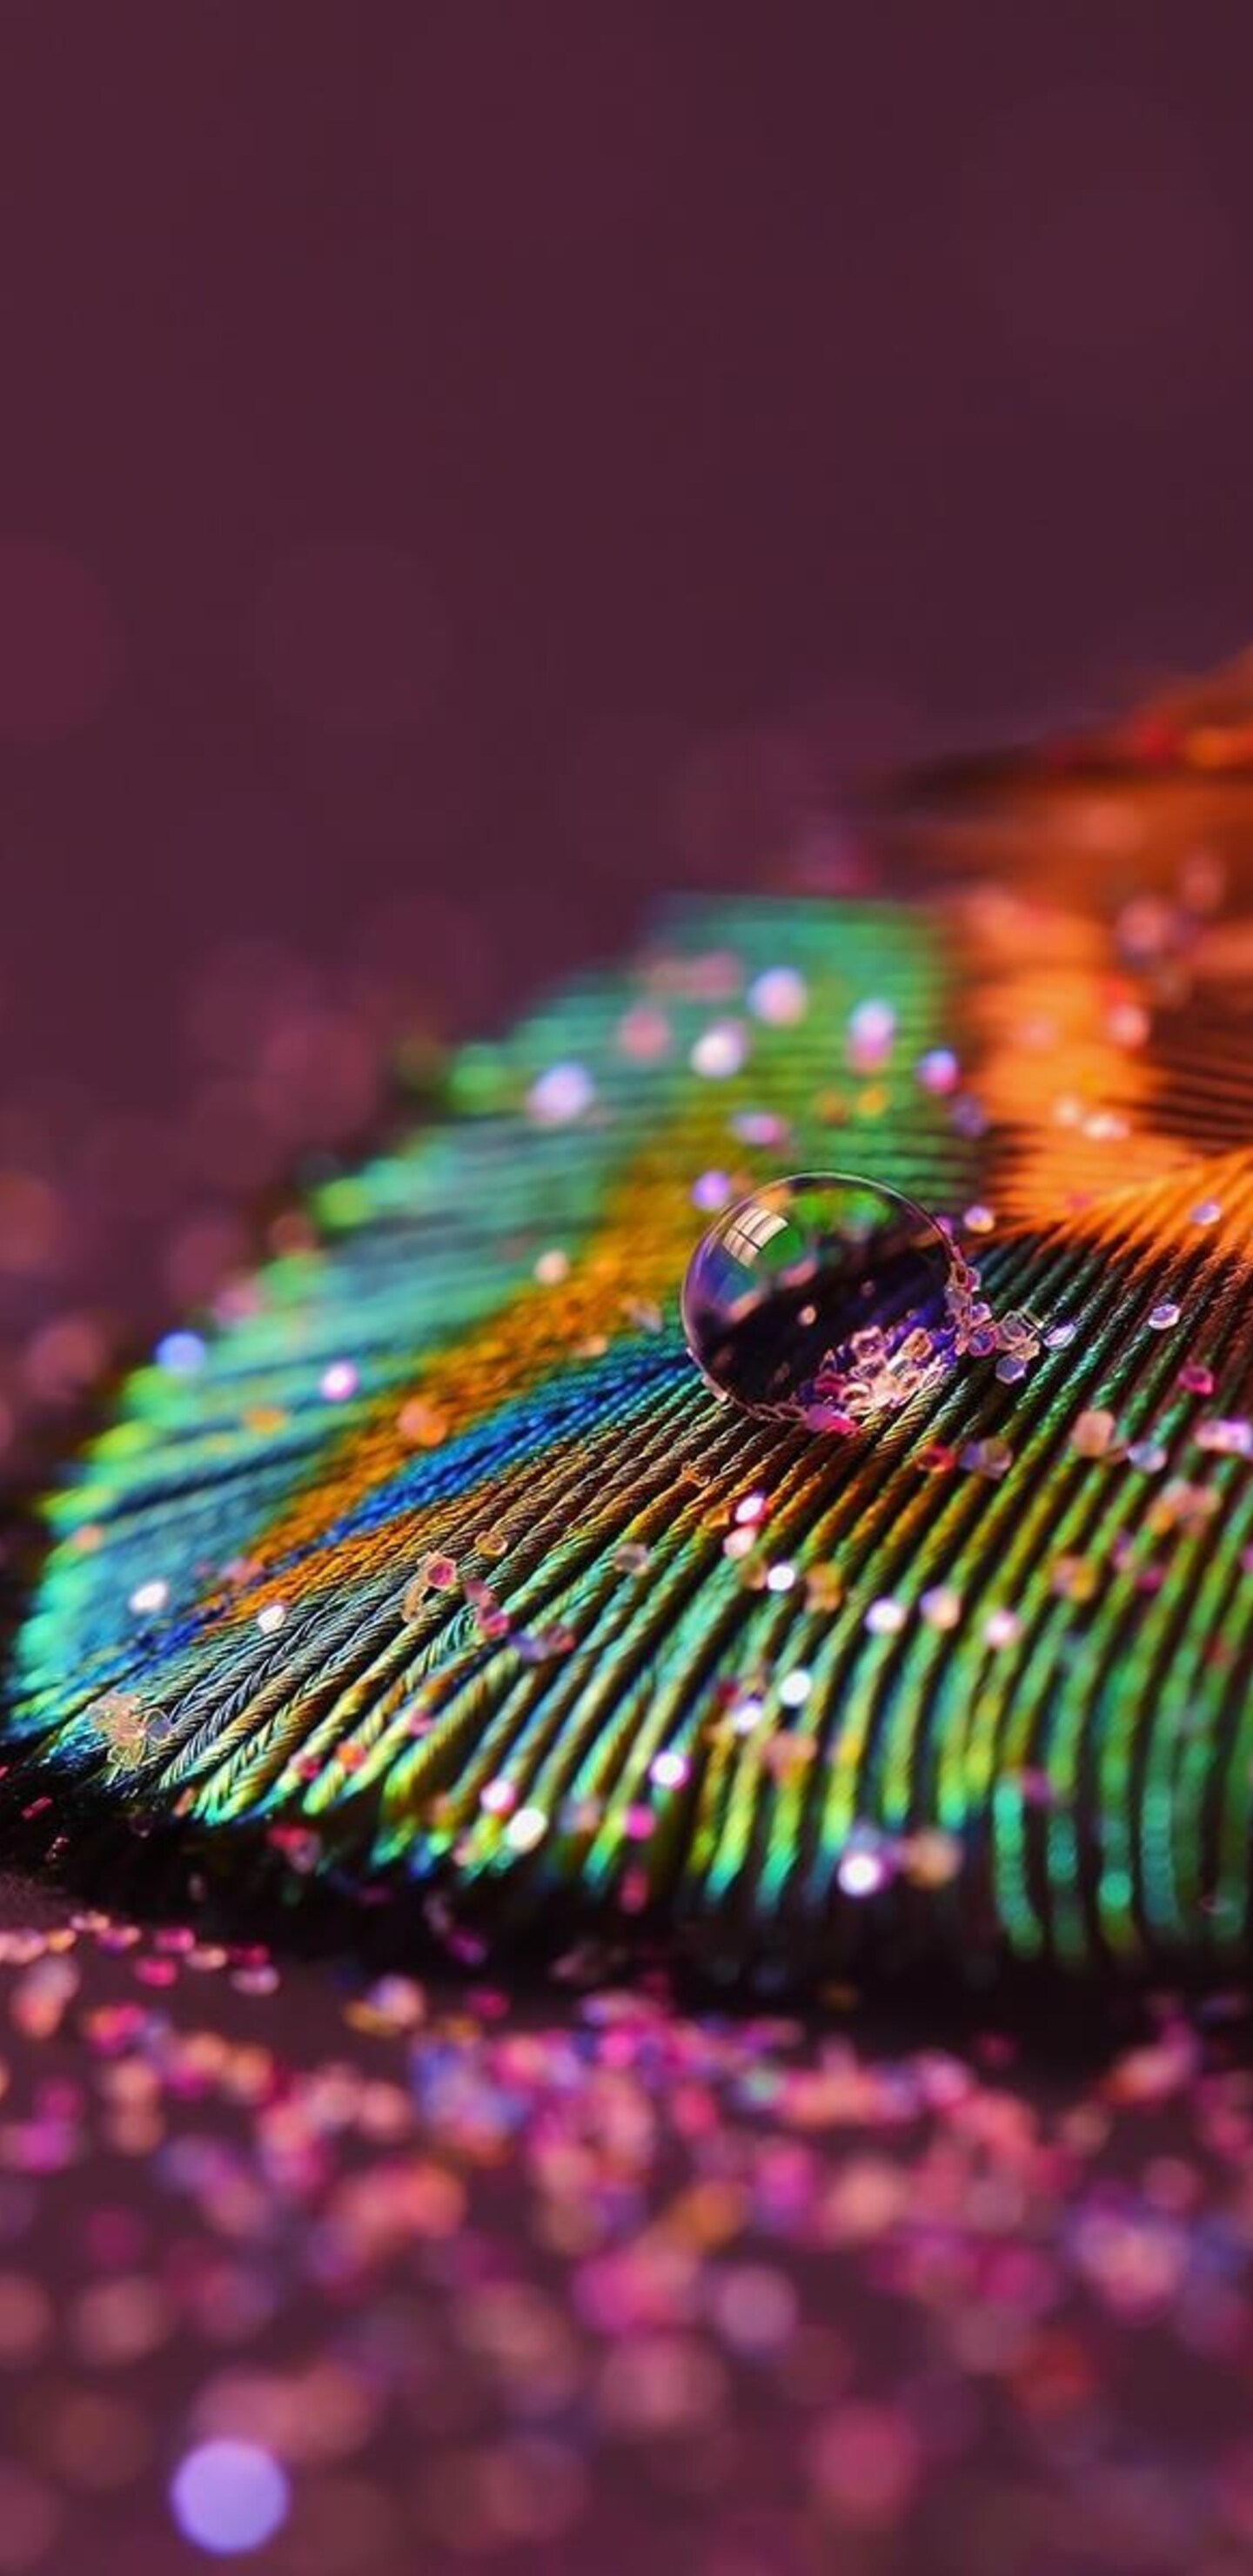 1440x2960 Feather Drop Samsung Galaxy Note 9 8 S9 S8 S8 Qhd Hd 4k Wallpapers Images Backgrounds Photos And Pictures